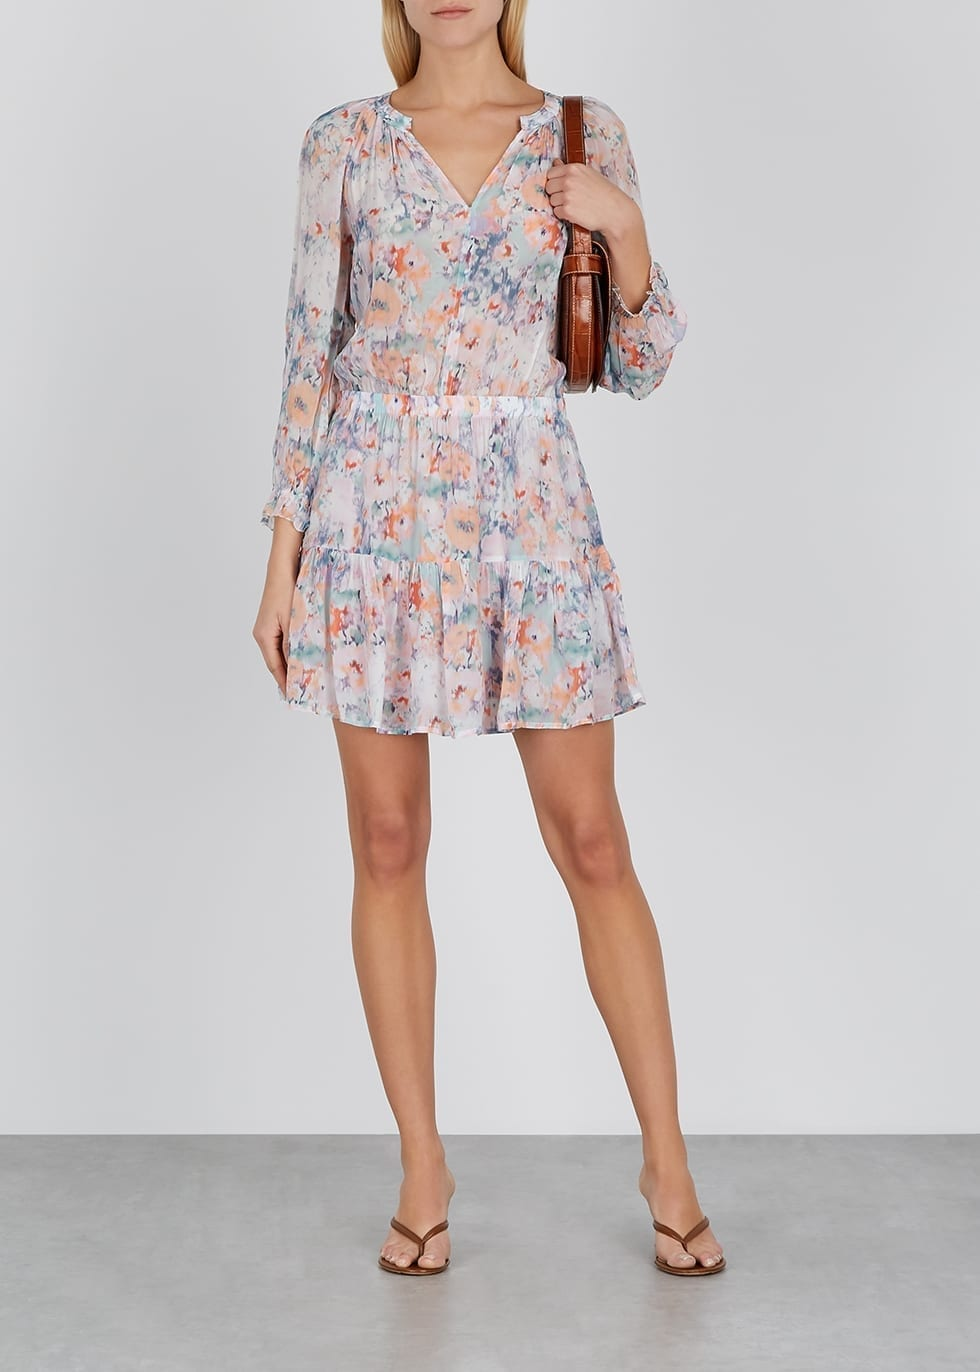 VELVET BY GRAHAM & SPENCER Leah Printed Chiffon Dress